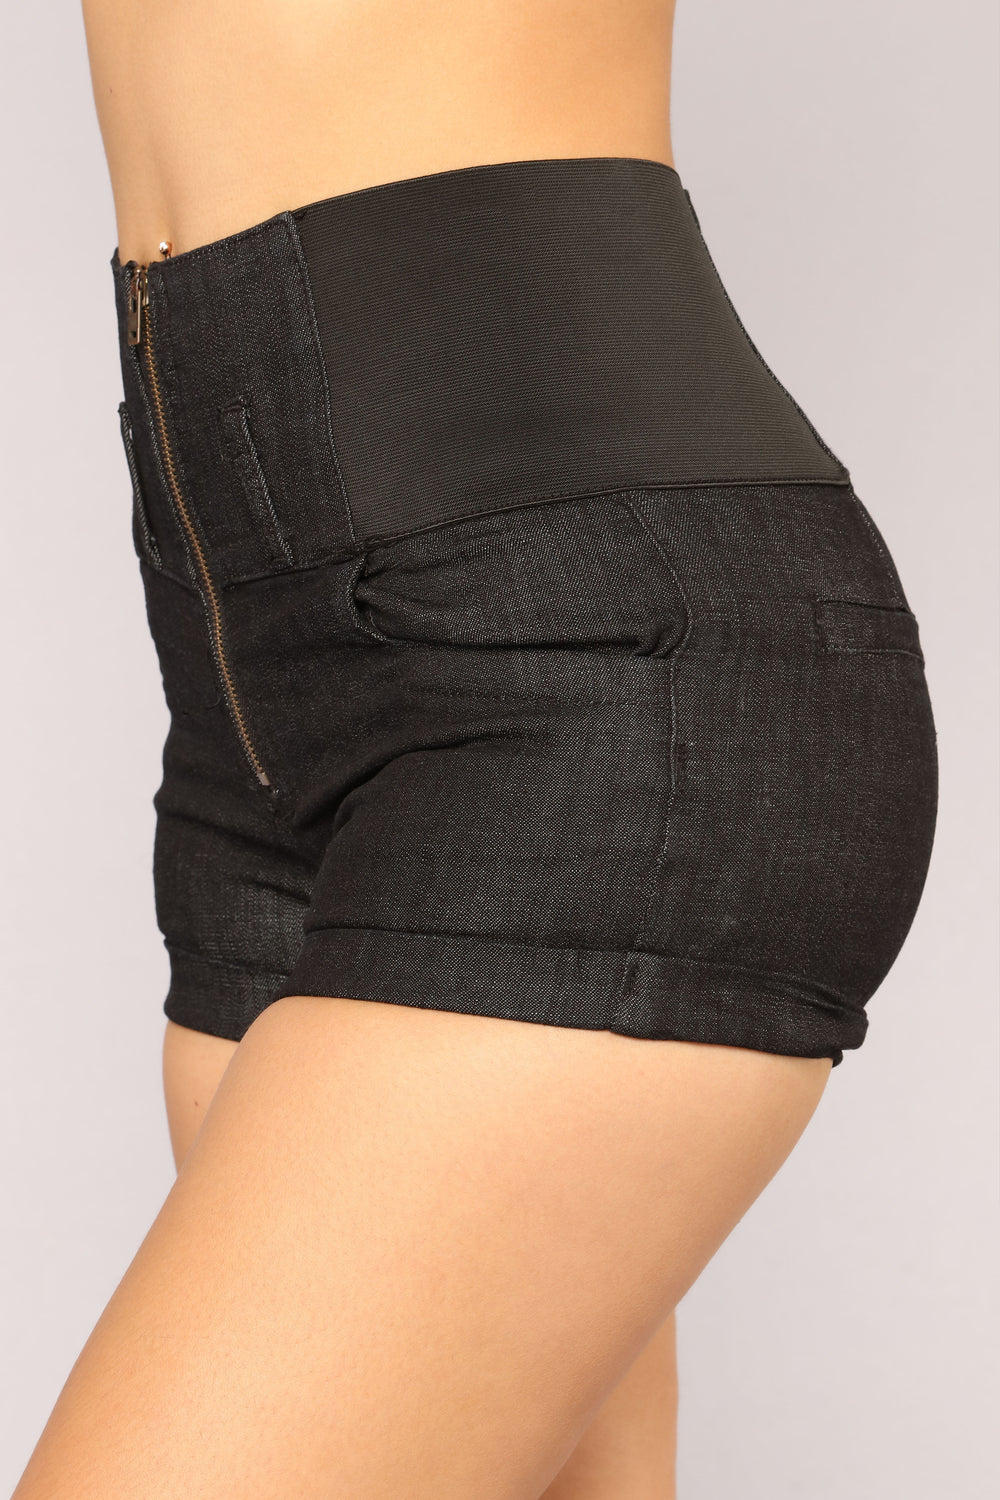 Where's This Going High Rise Shorts - Black